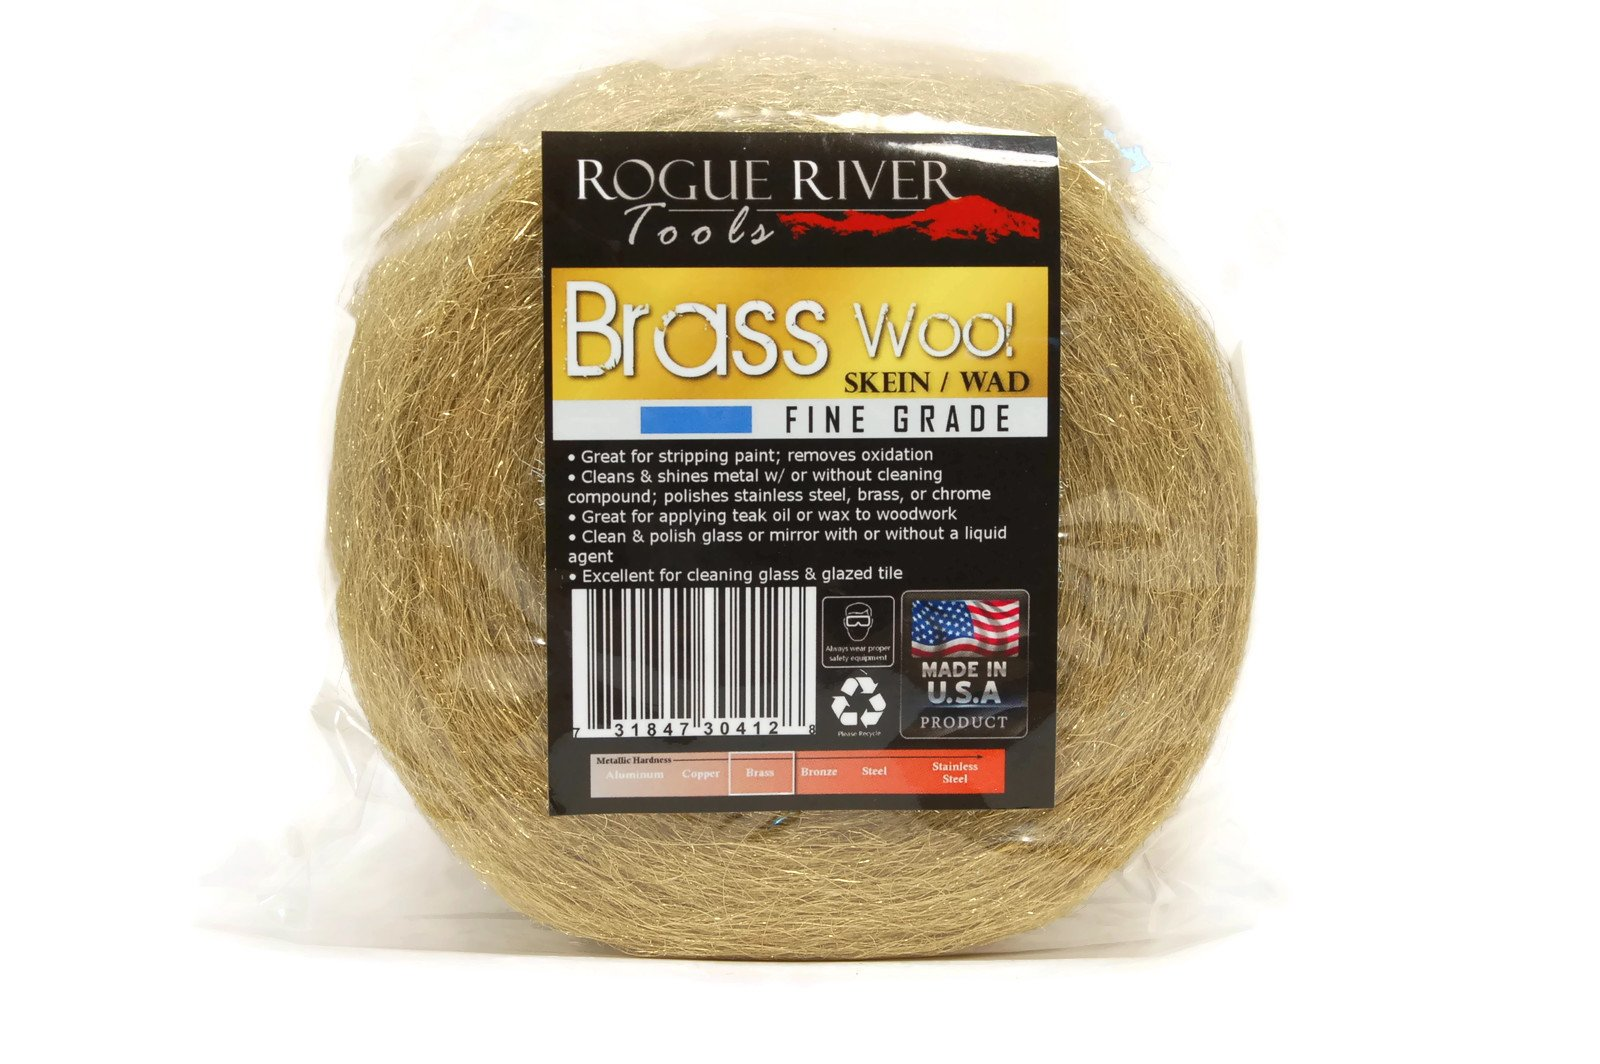 Rogue River Tools Brass Wool 1lb Roll - Fine